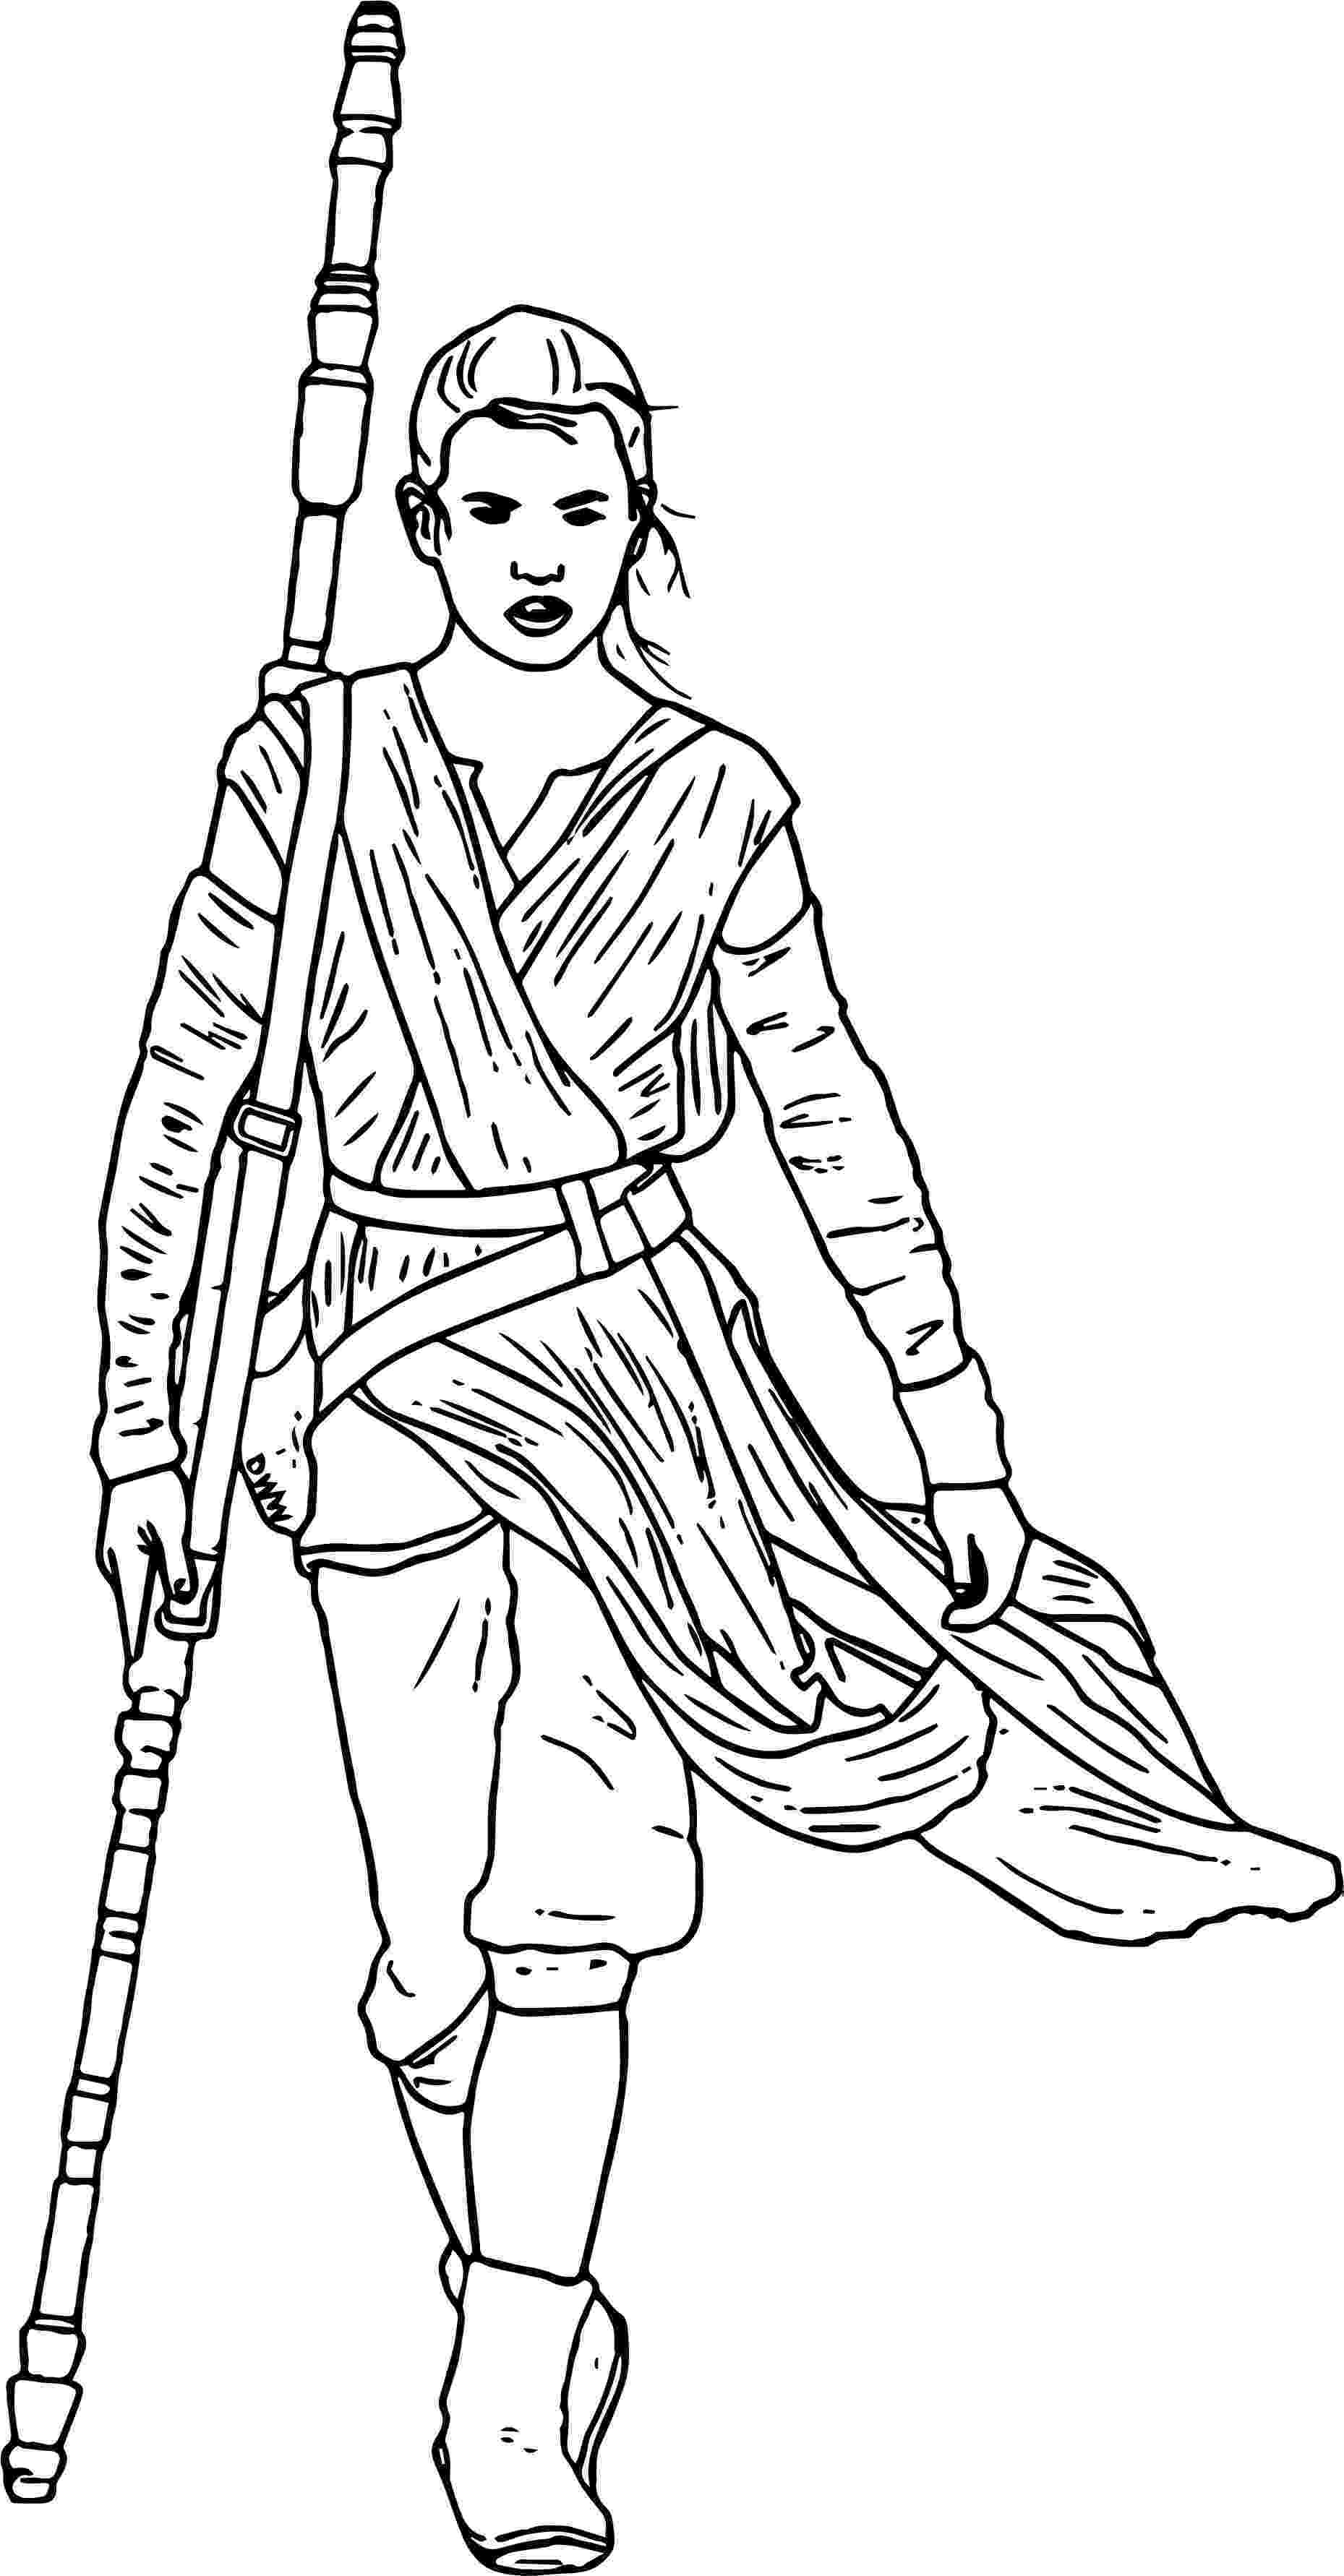 star wars characters coloring pages lego star wars characters coloring page download print pages star coloring characters wars